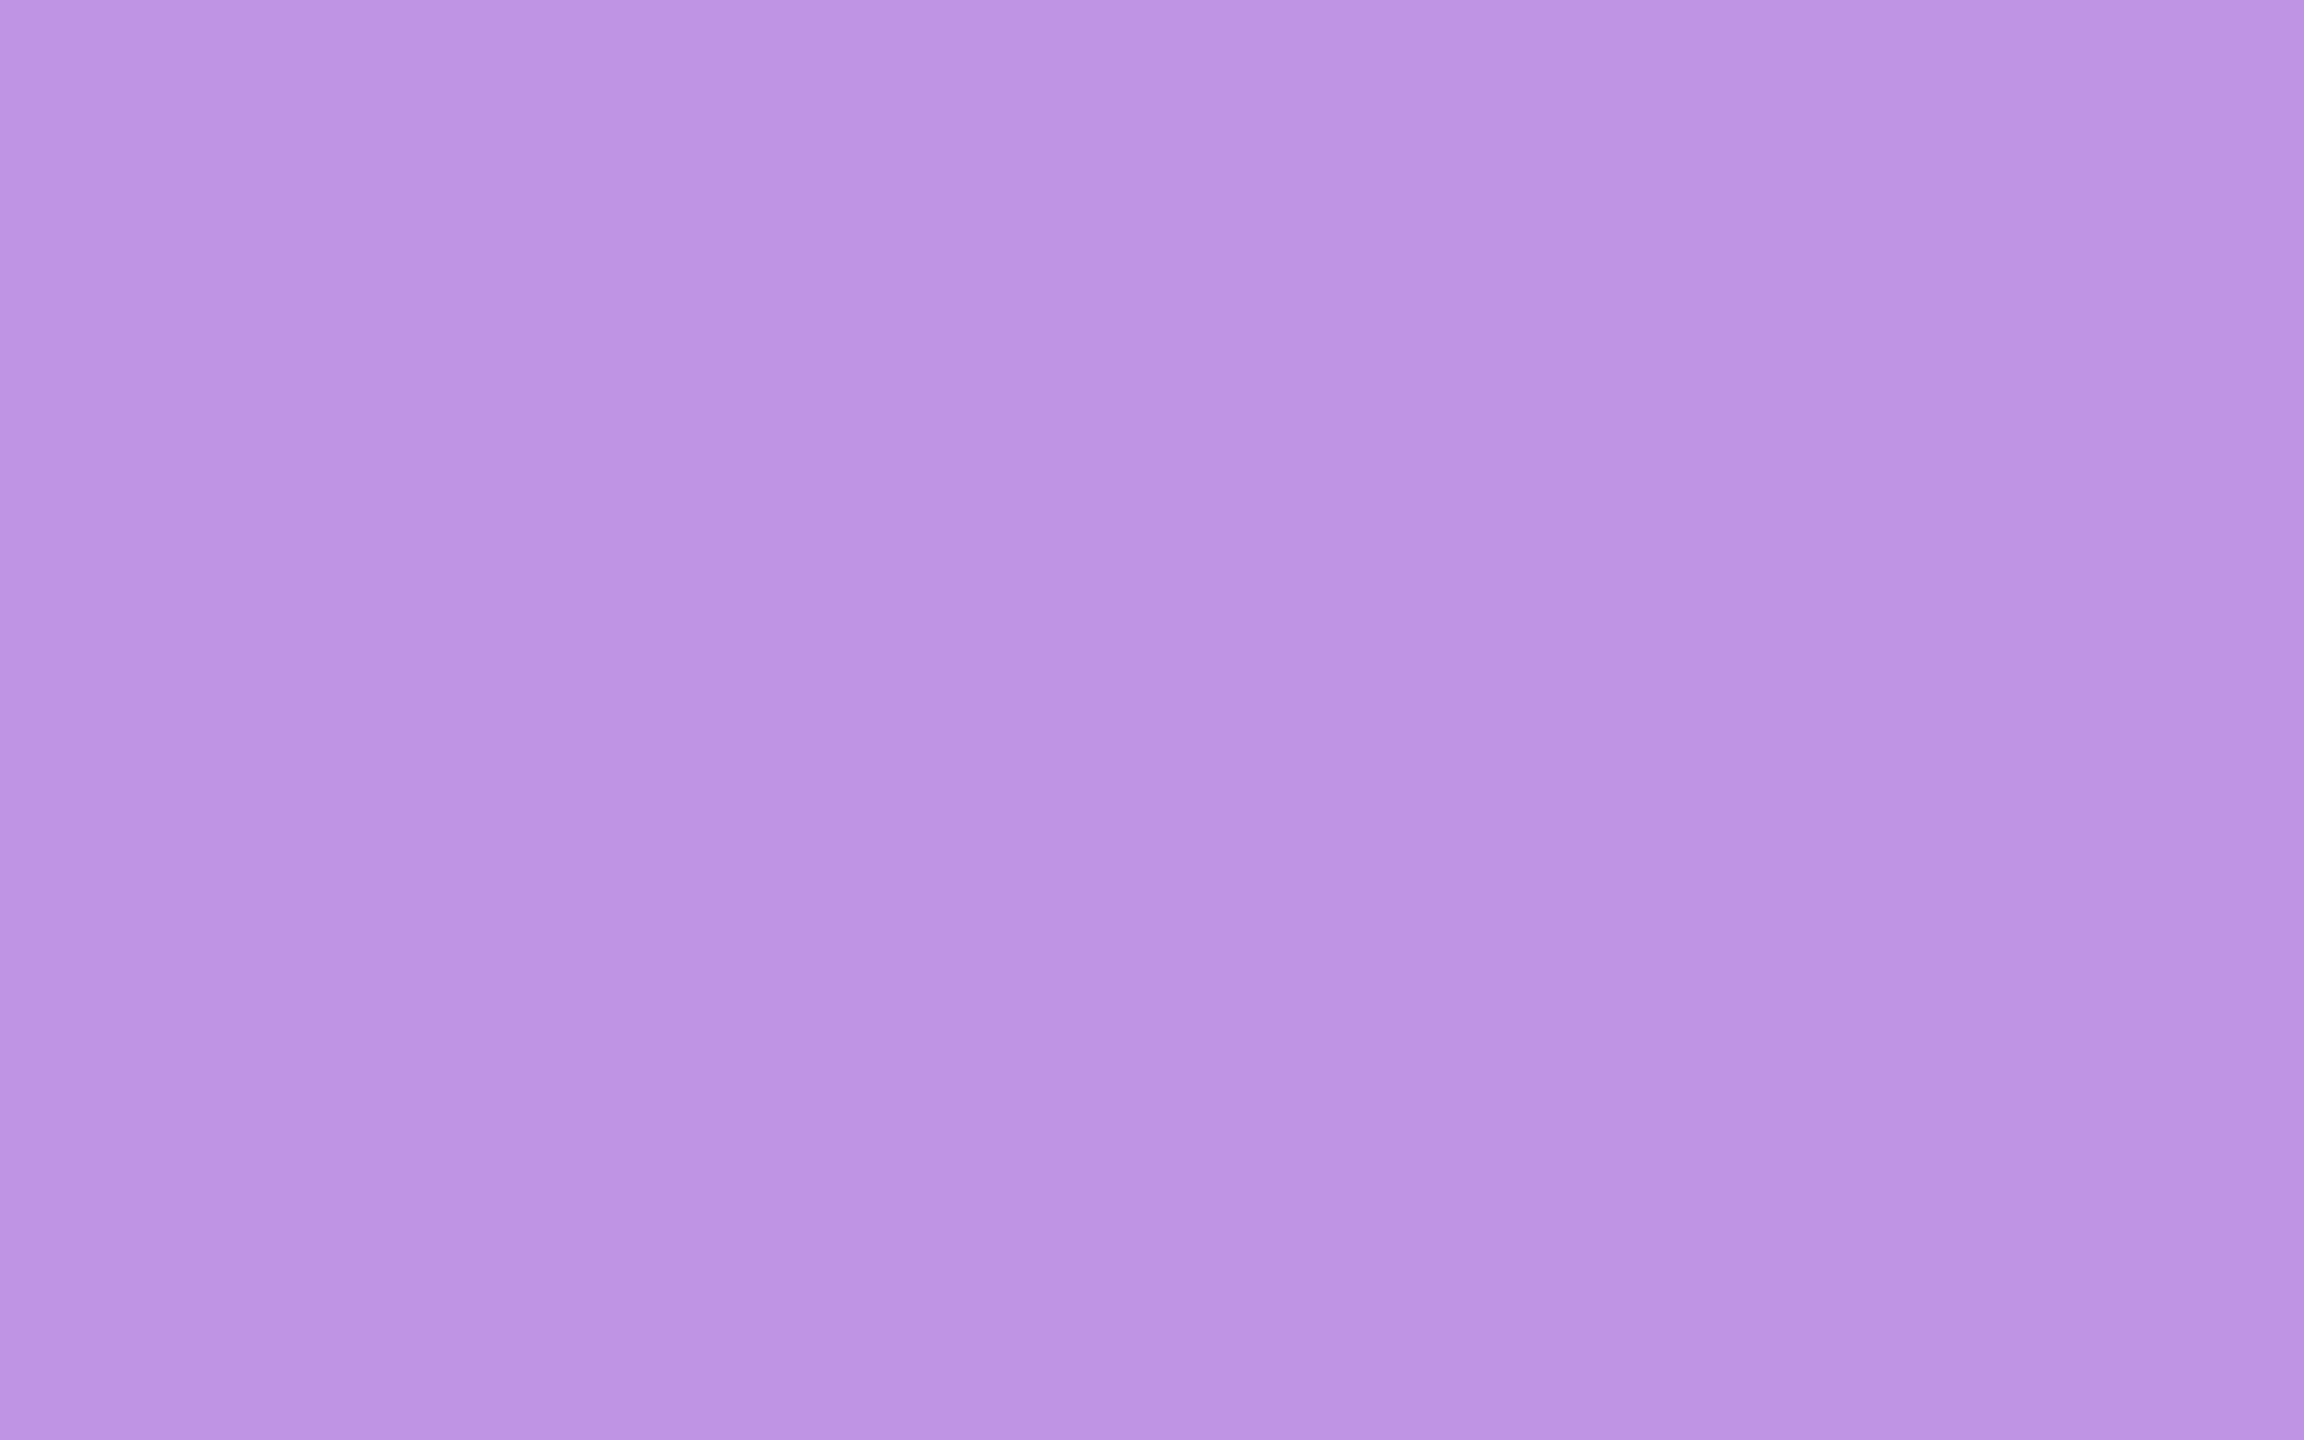 2304x1440 Bright Lavender Solid Color Background